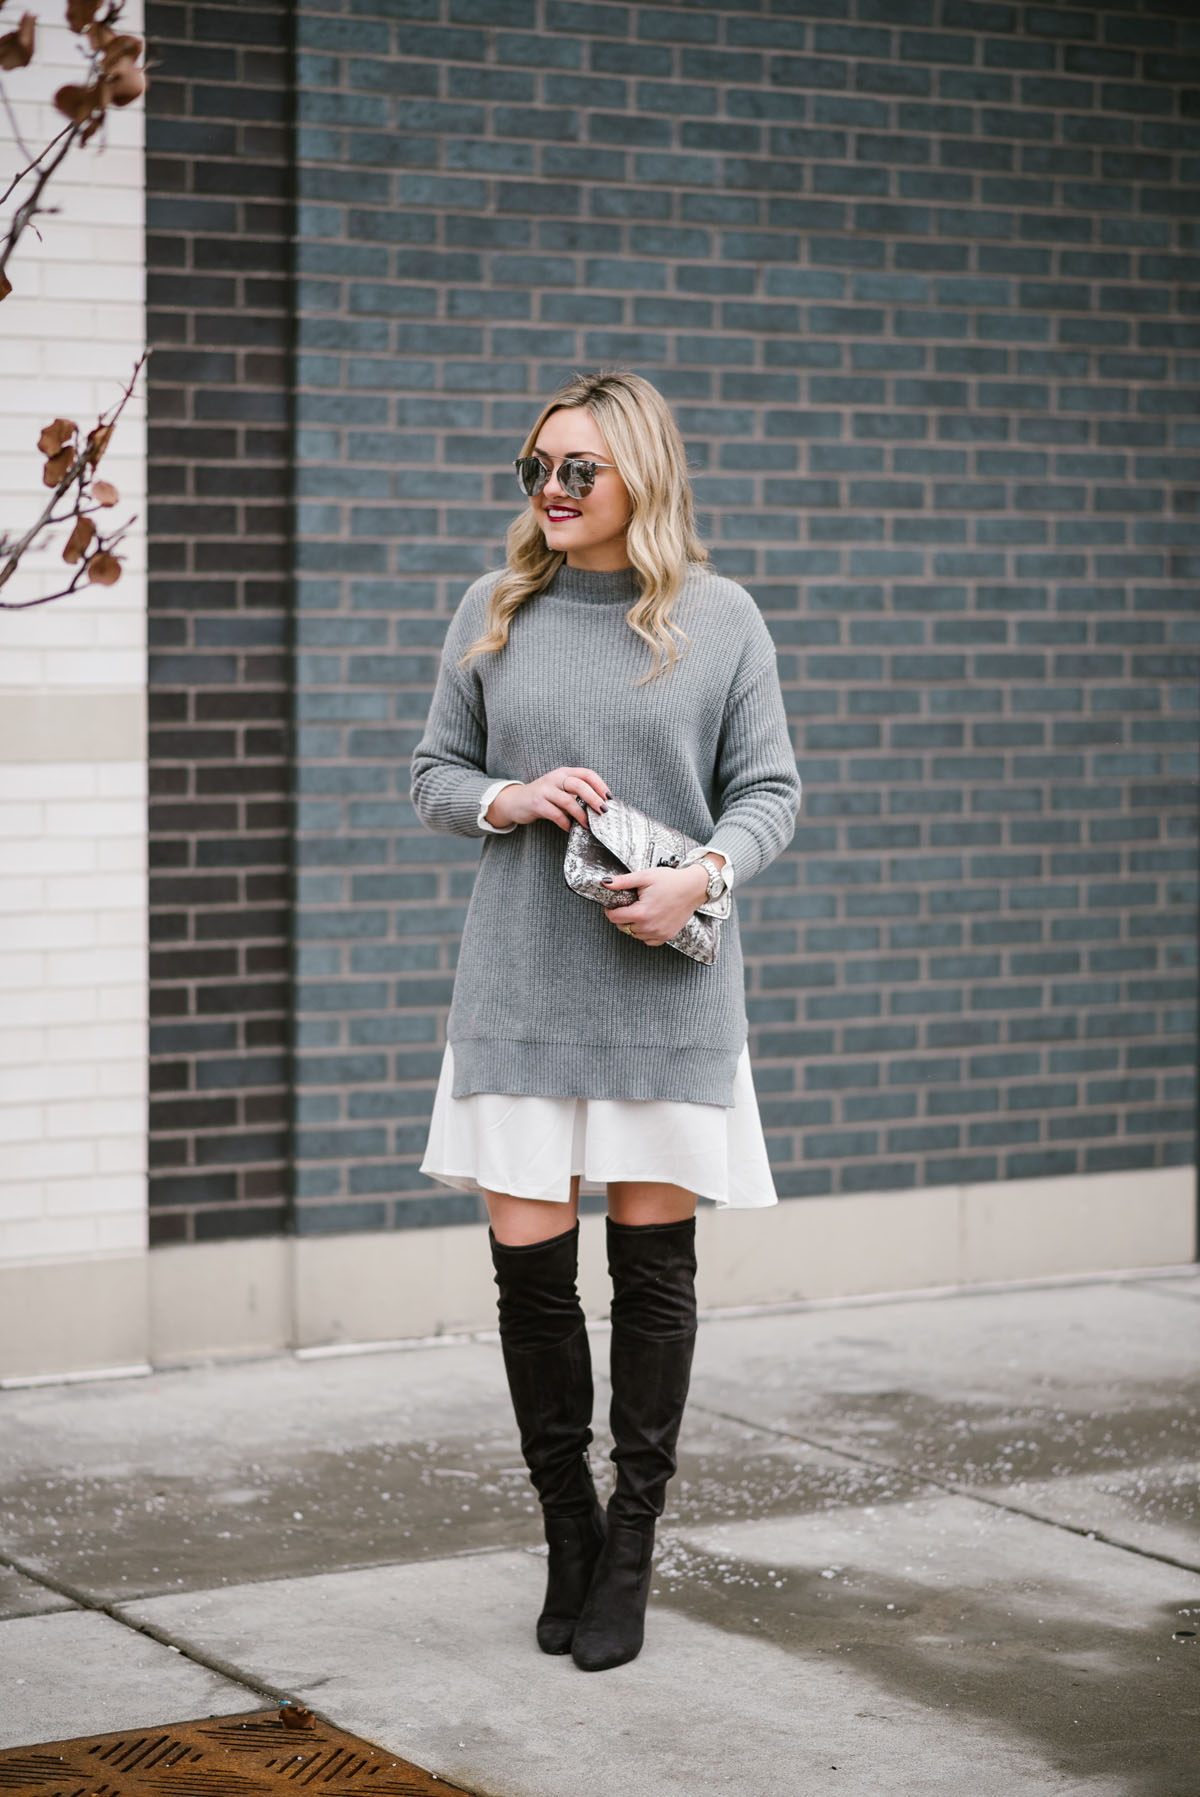 62088e5aebf Bows   Sequins wearing a layered sweater dress with grey suede over the  knee boots.